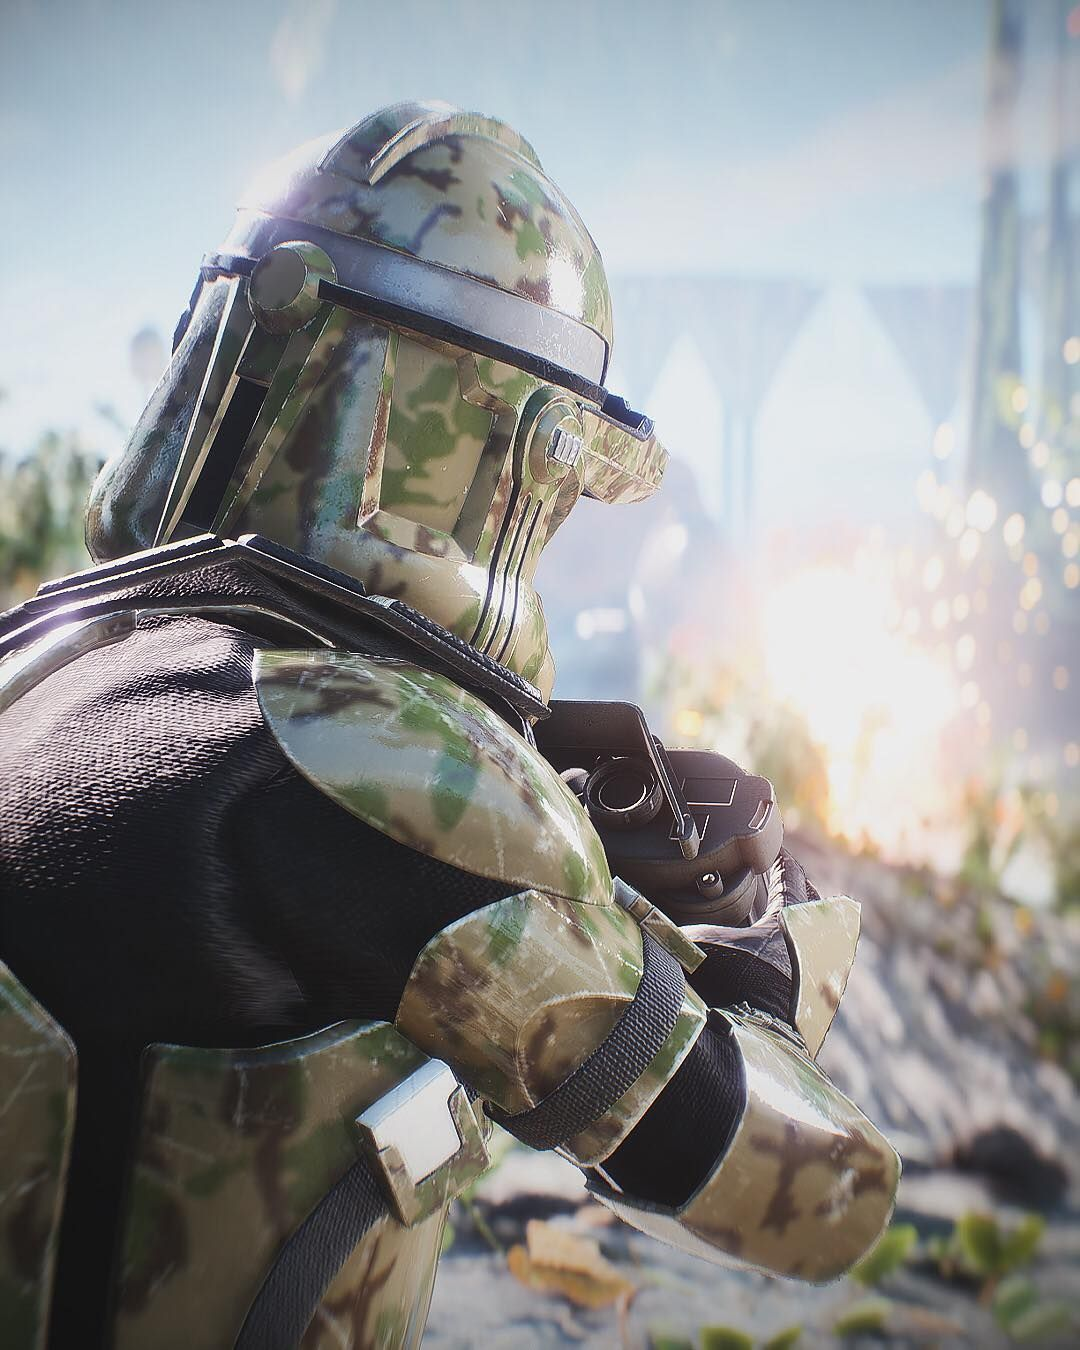 Image may contain outdoor Star wars battlefront, Star